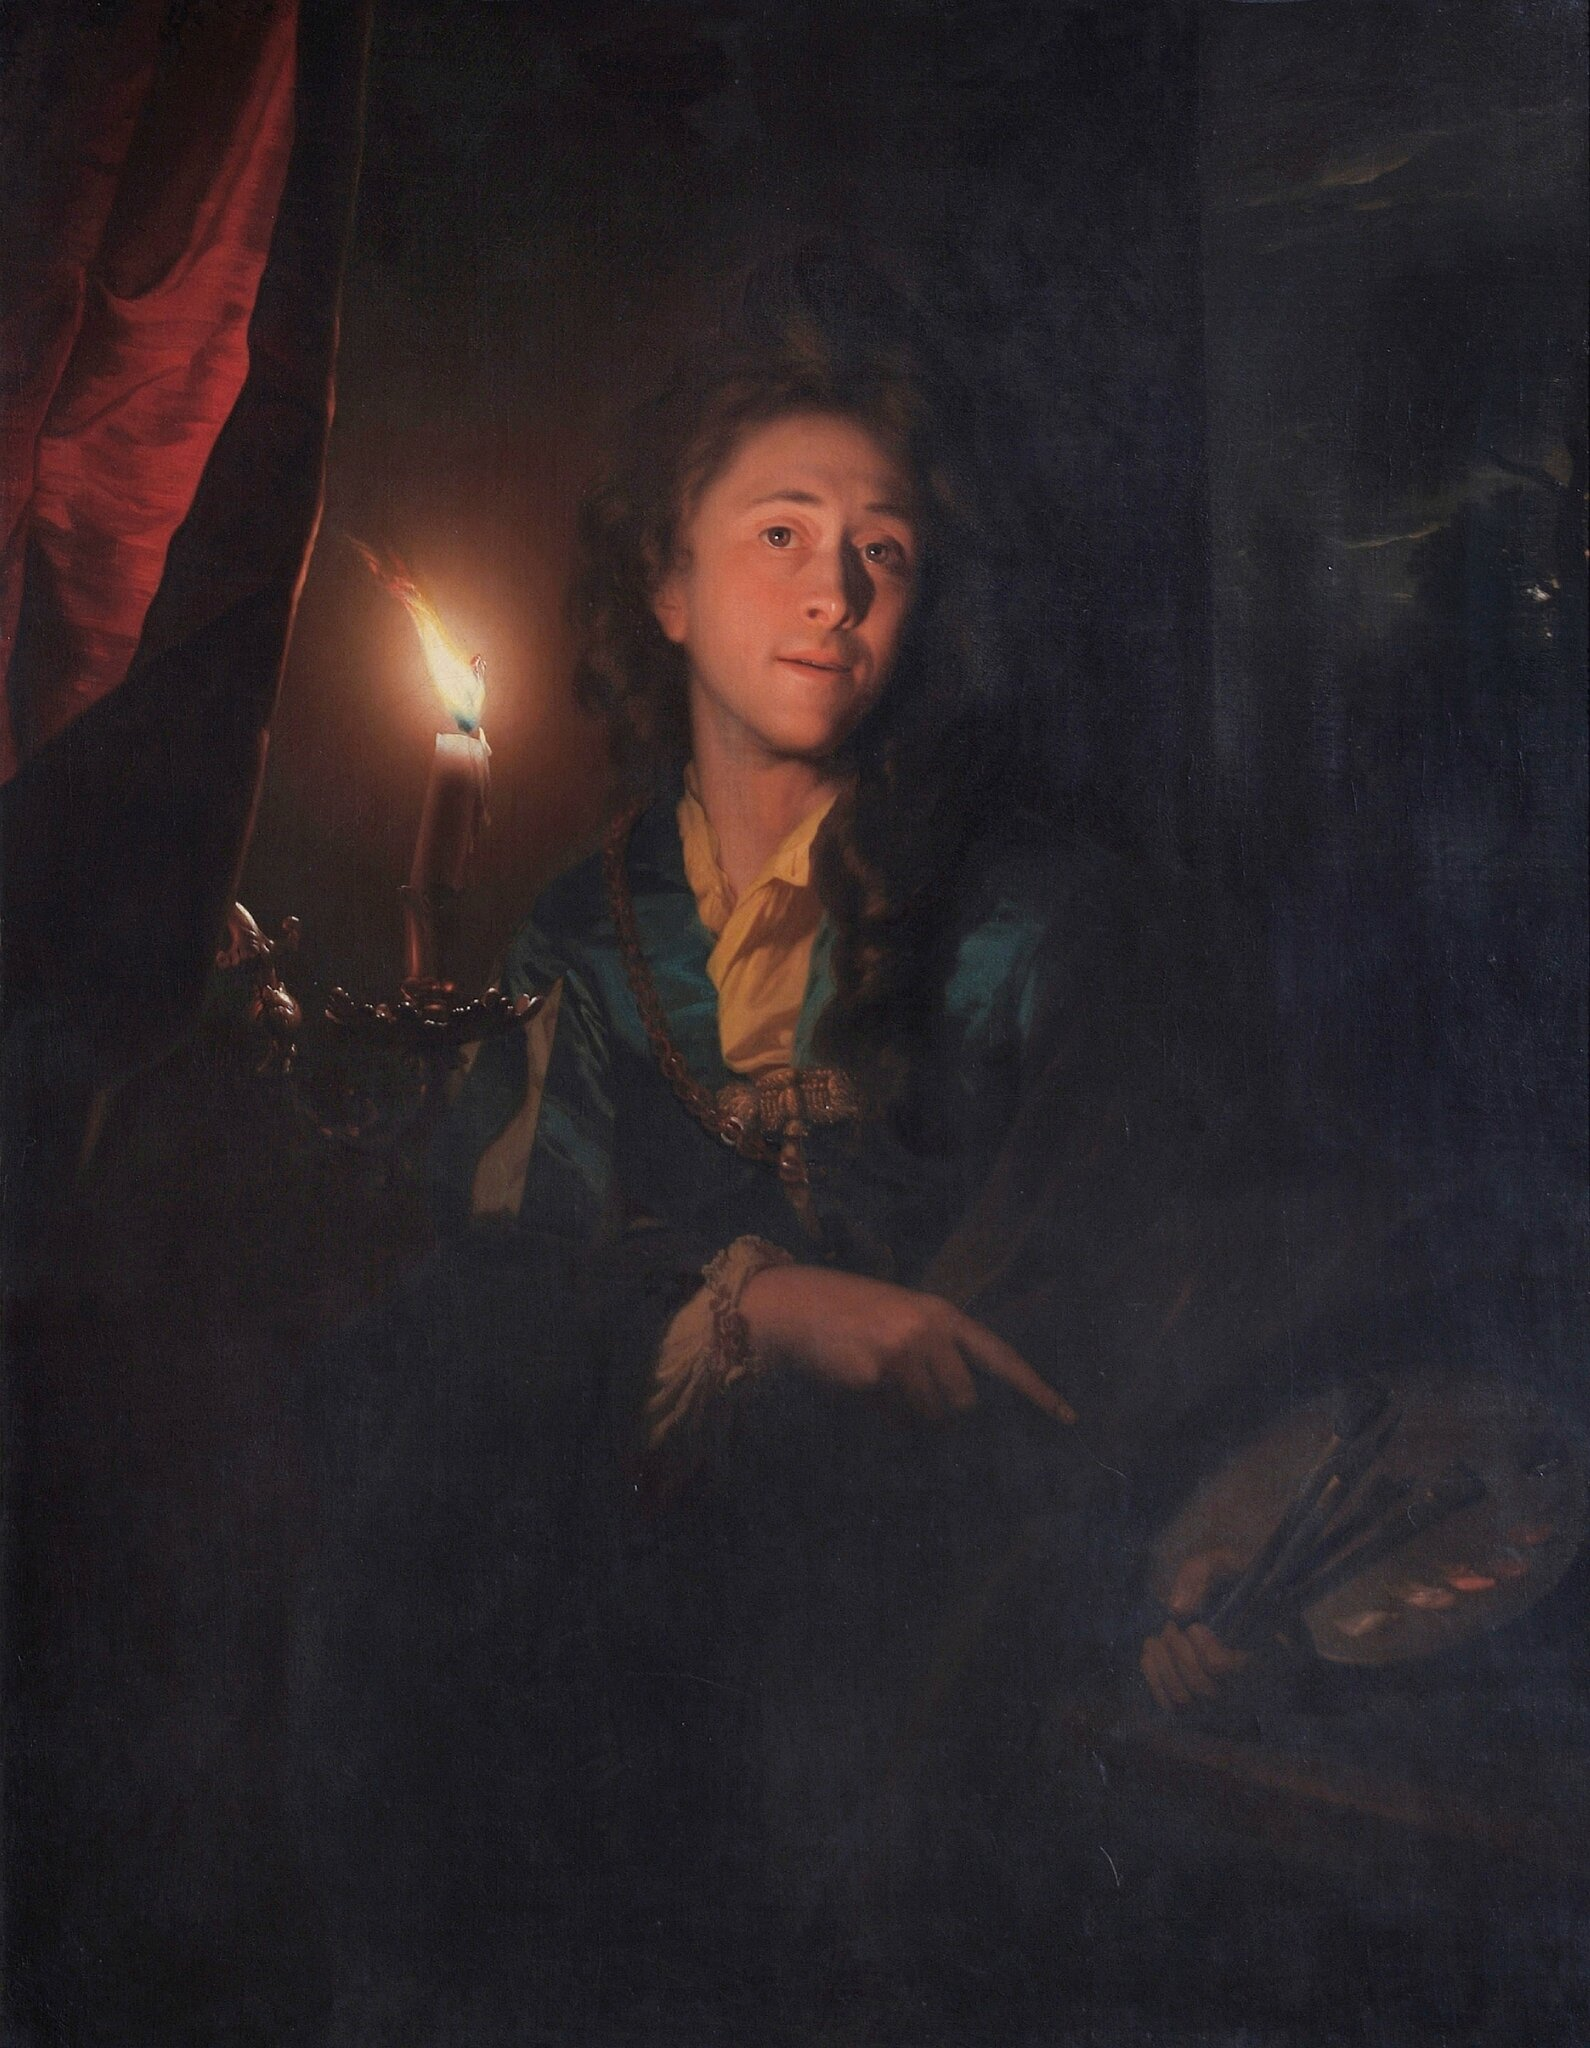 Wallraf-Richartz-Museum opens first-ever exhibition to survey Godefridus Schalcken's oeuvre